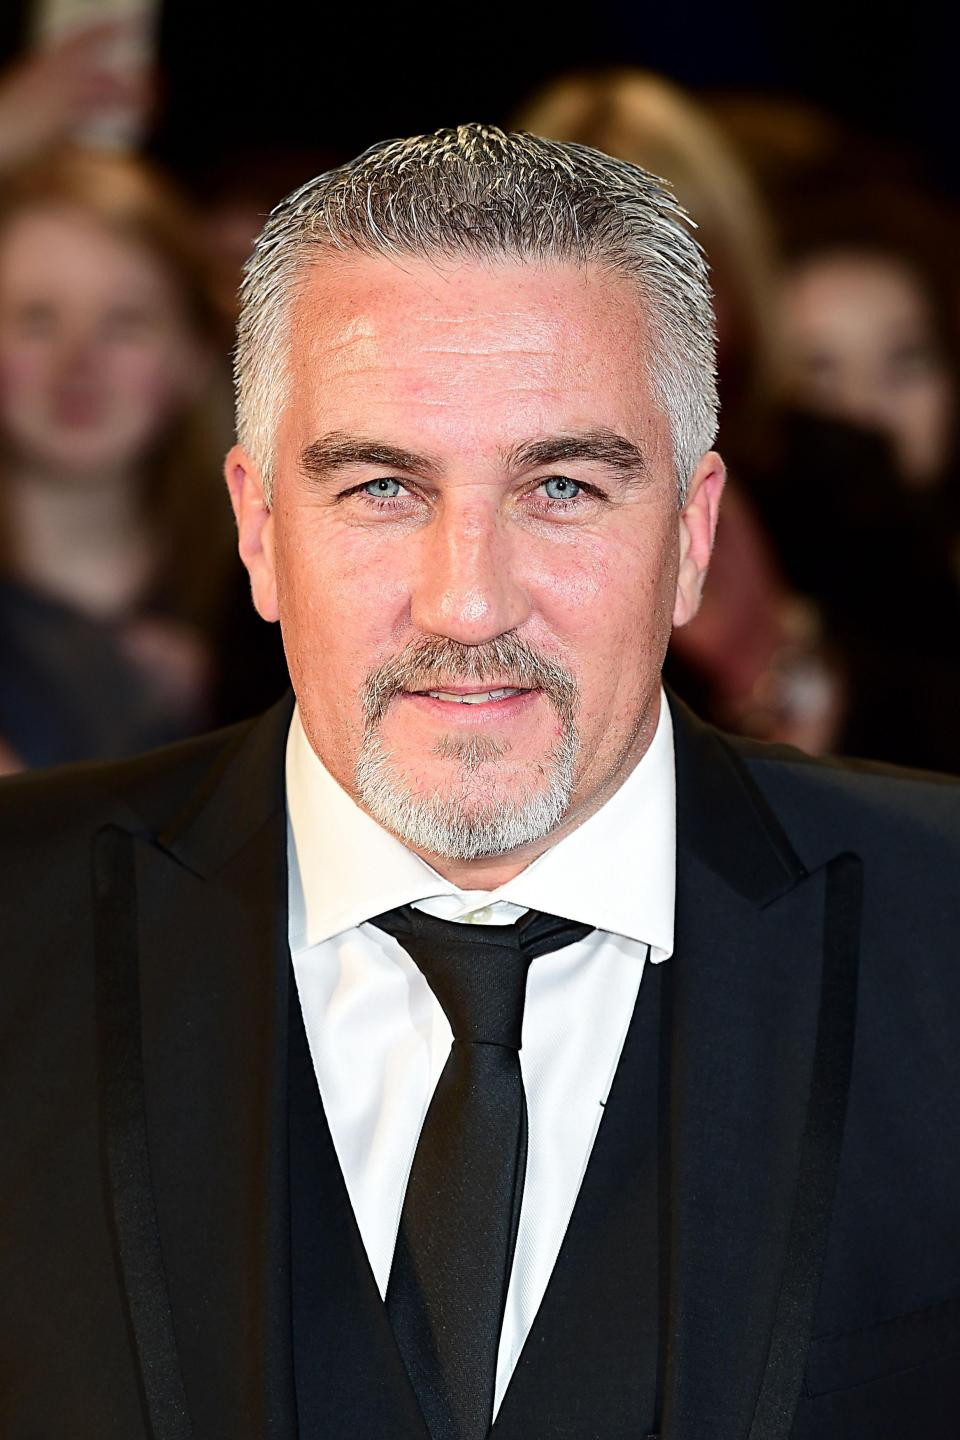 Paul Hollywood has a new set of co-stars